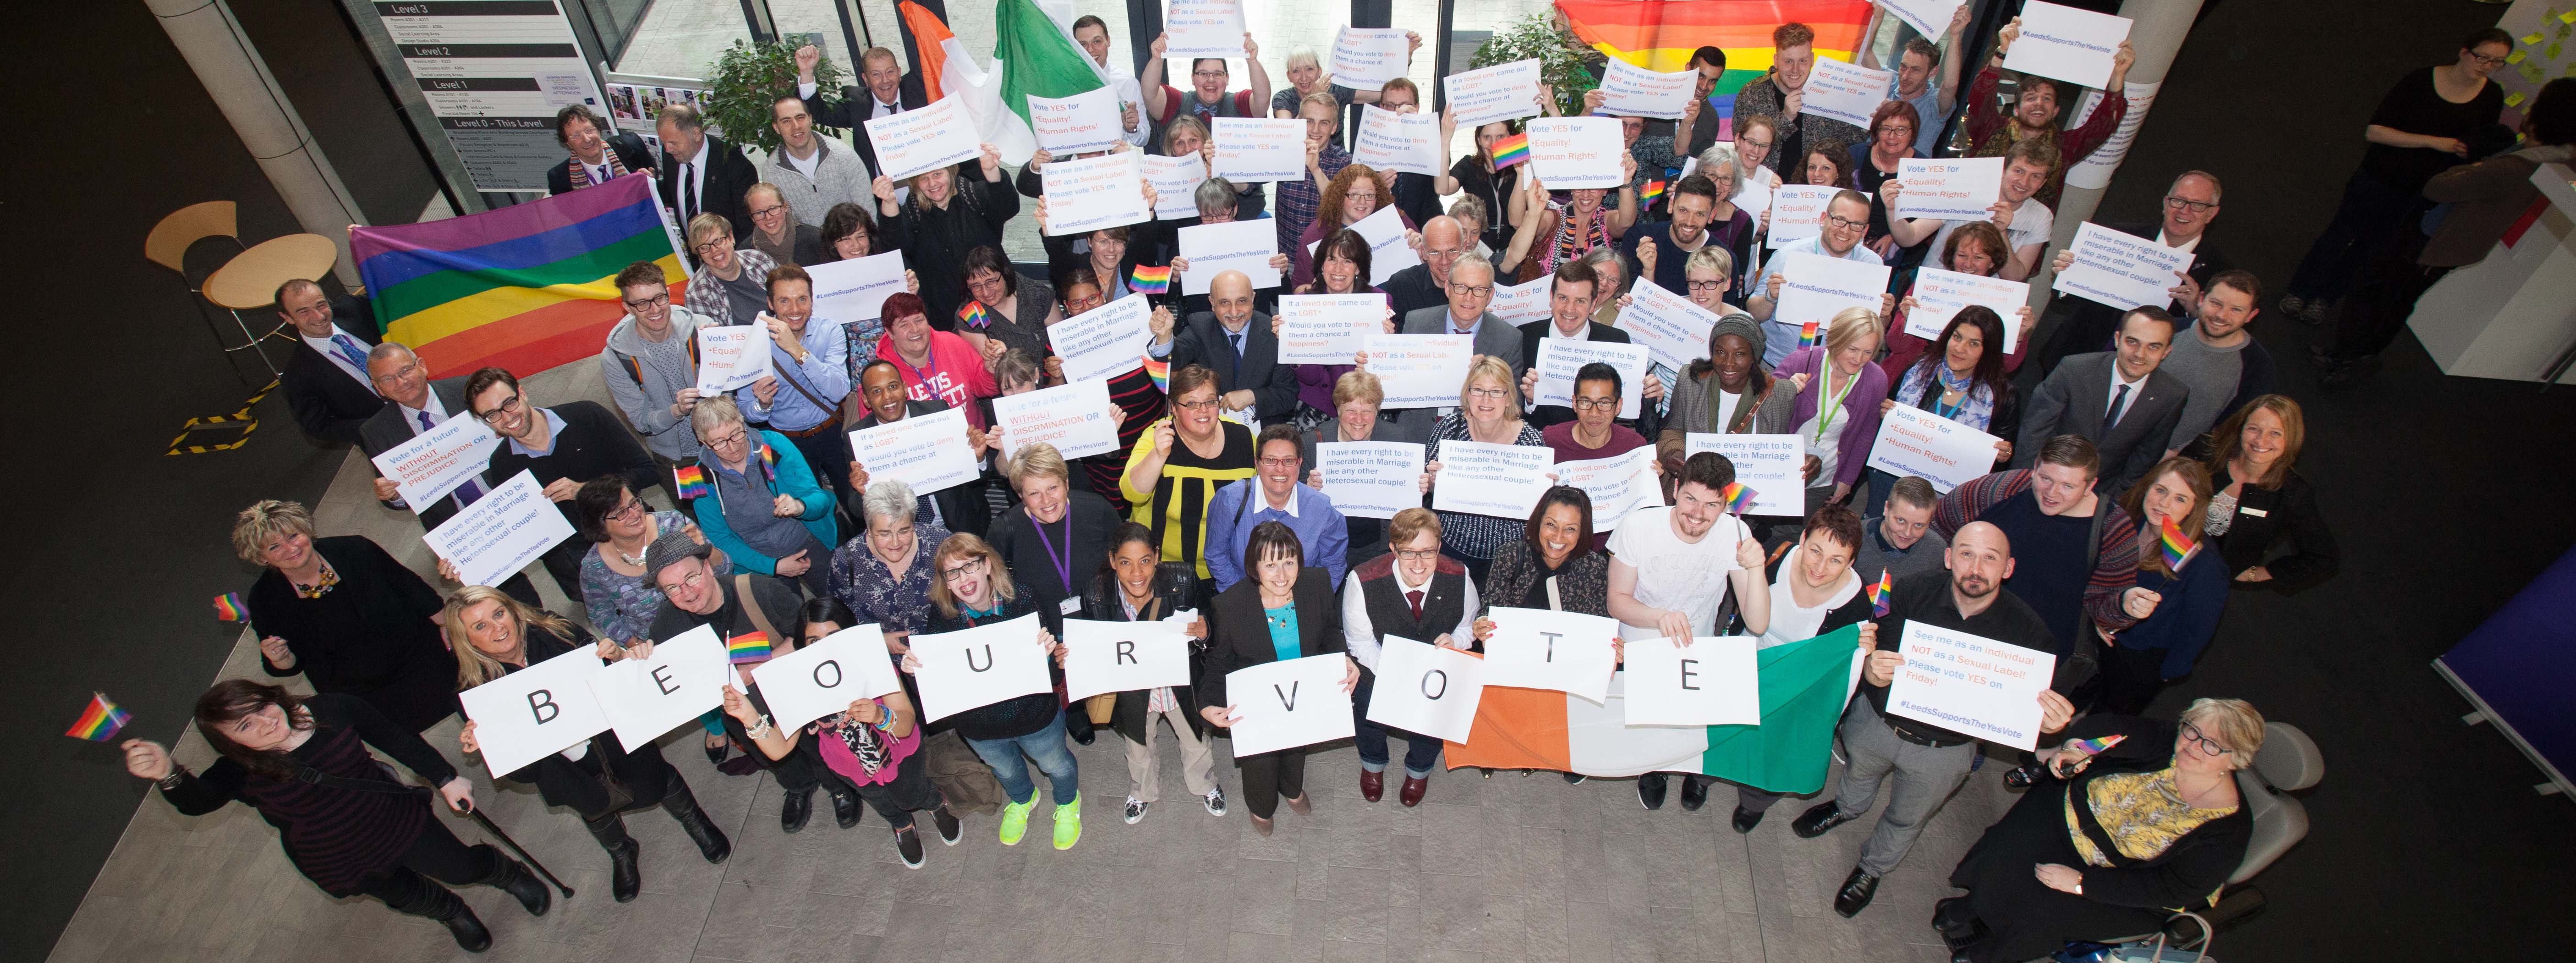 Well Met Hosts Workplace Equality Conference